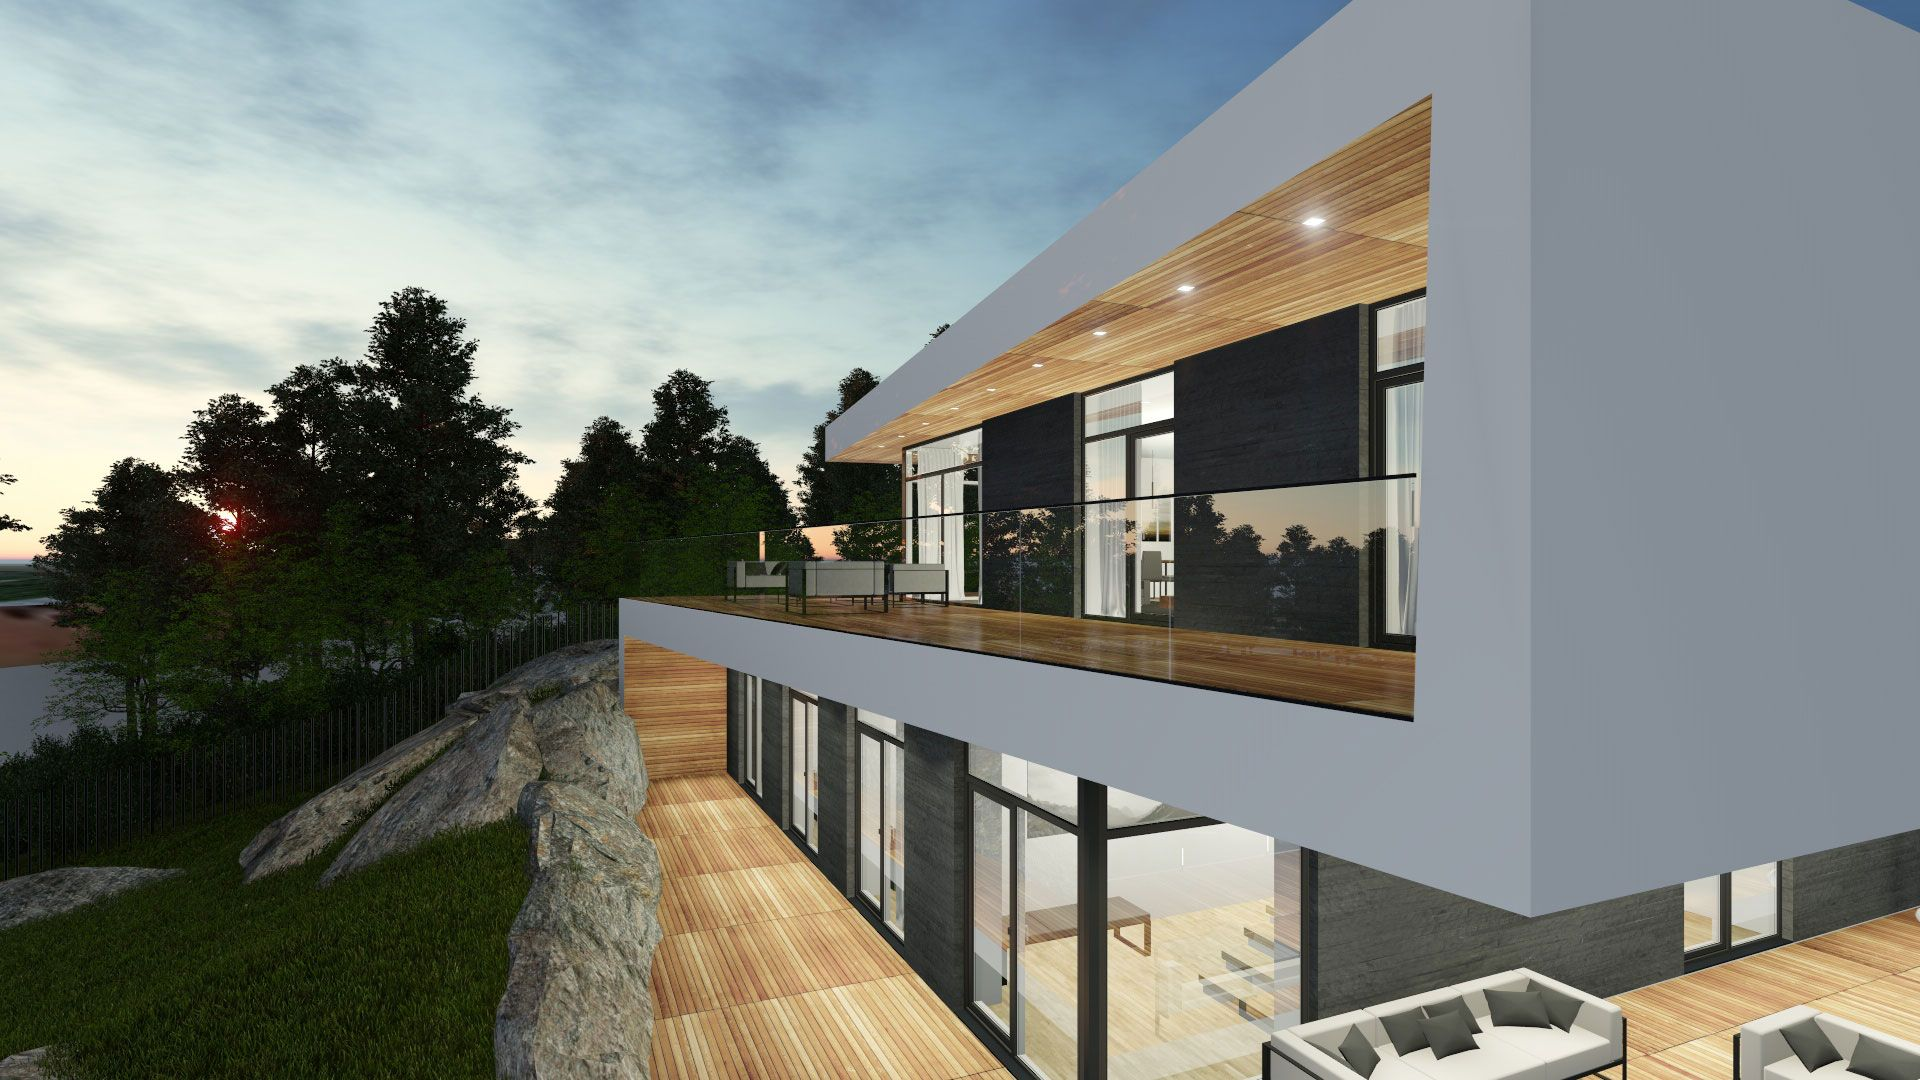 Villa Emelie In Stocholm 9 House Villa House House Styles